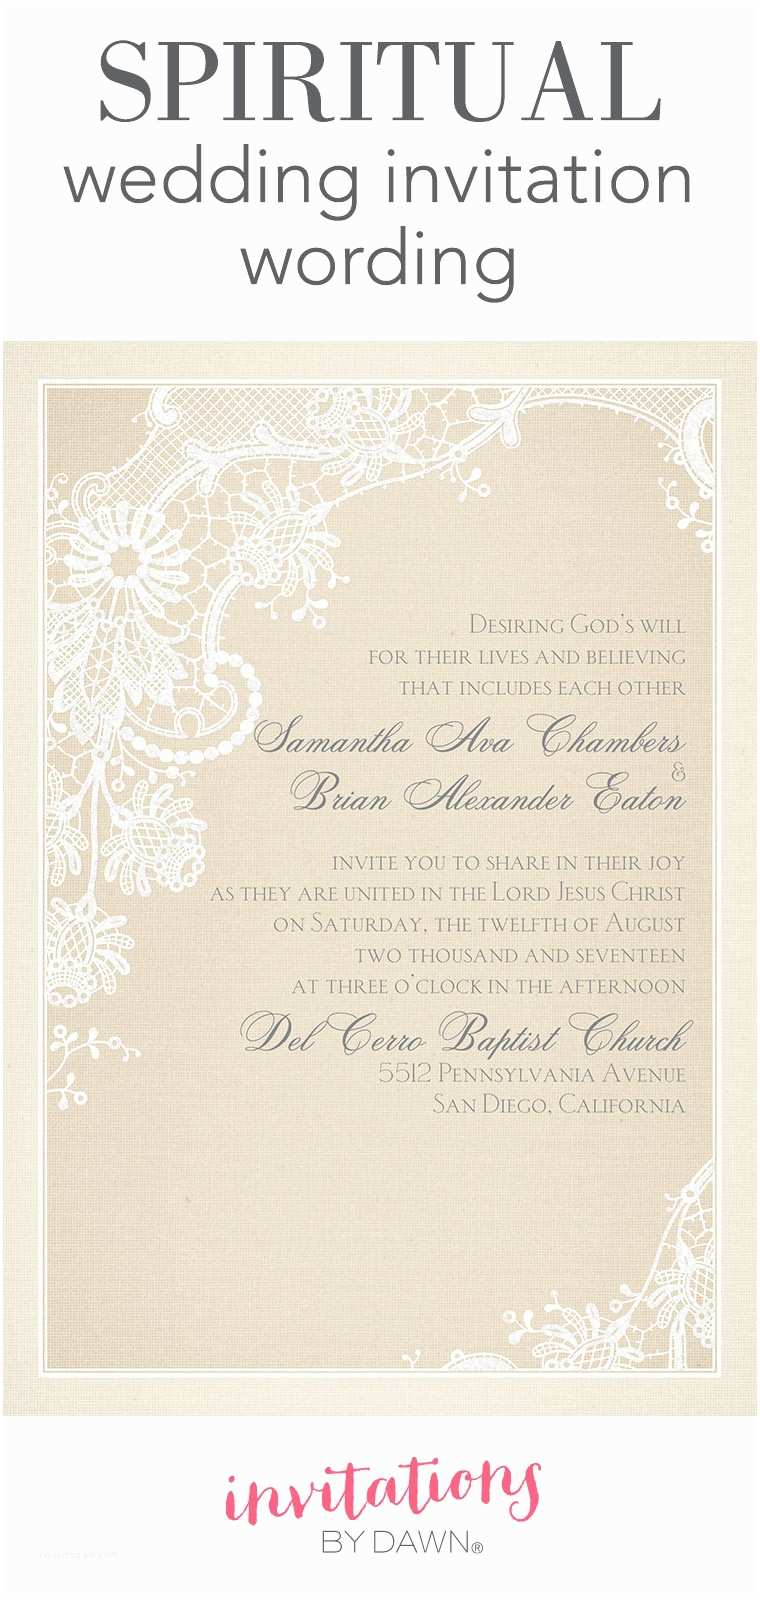 Religious Wedding Invitations Christian Wedding Invitation Wording